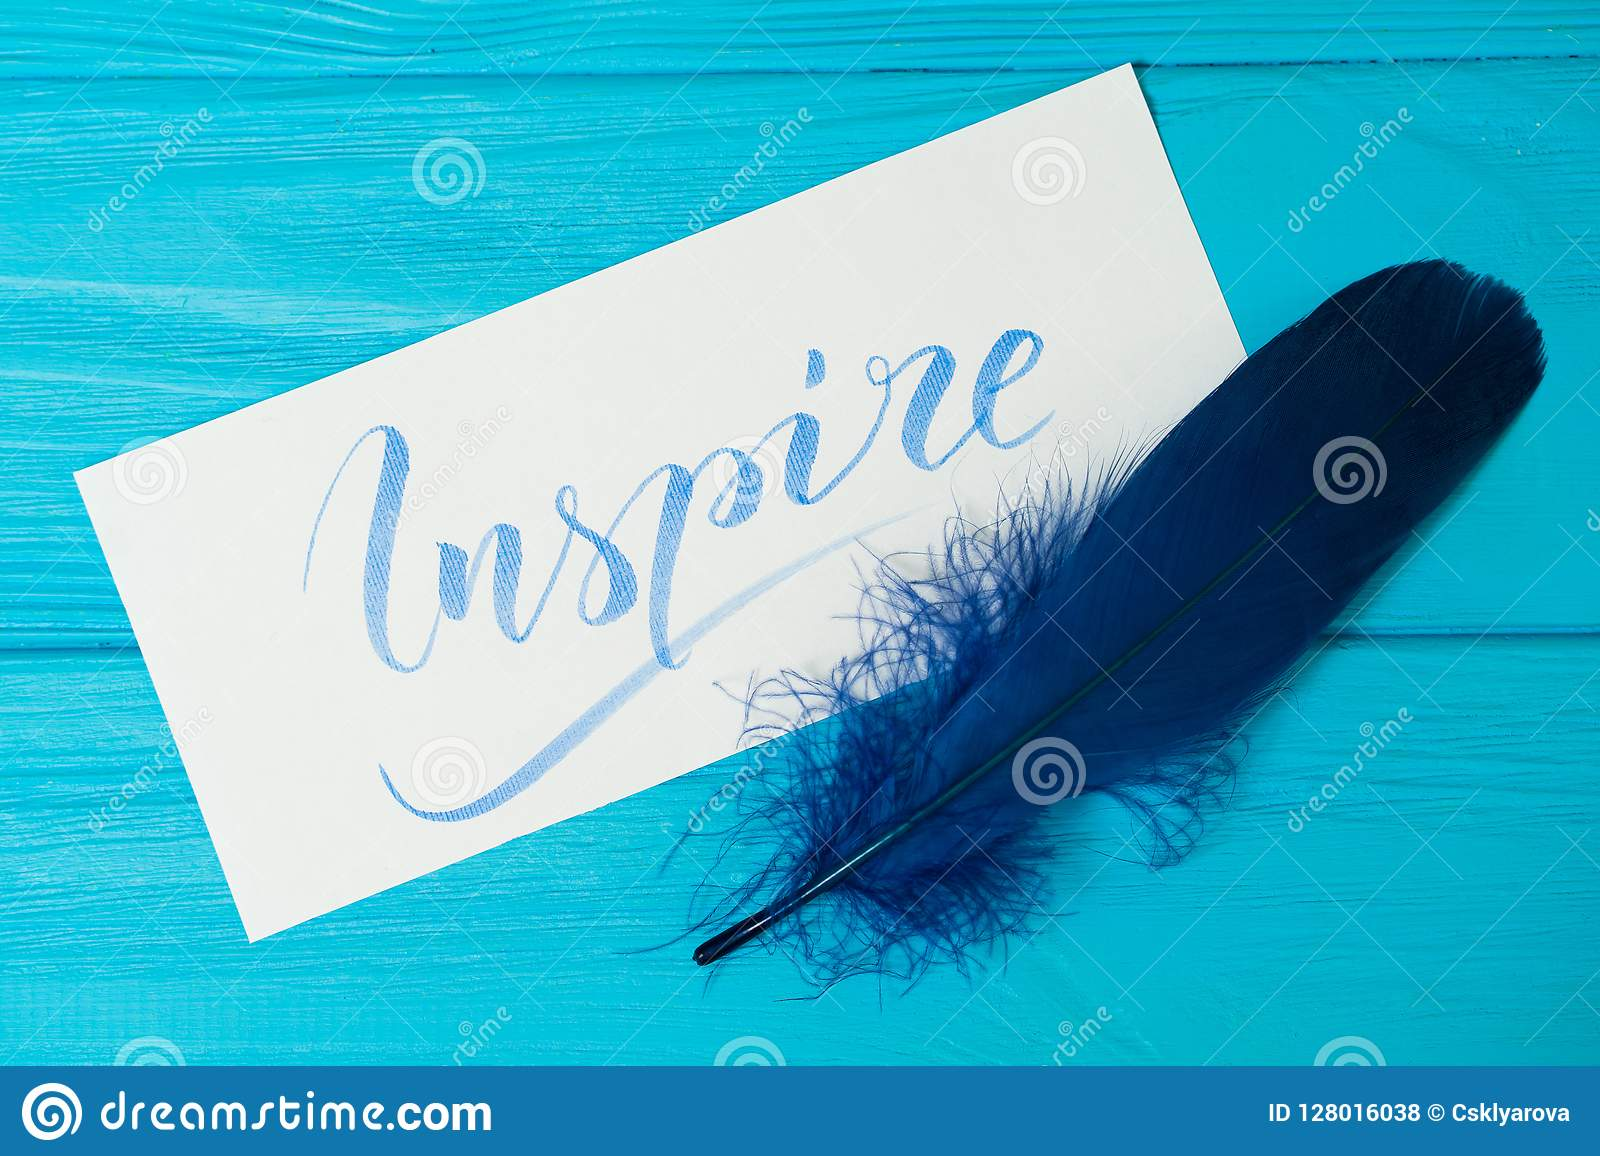 Inspire. Beautiful blue letters on canvas with blue feather. Calligraphy script. Art of writing letters. Background